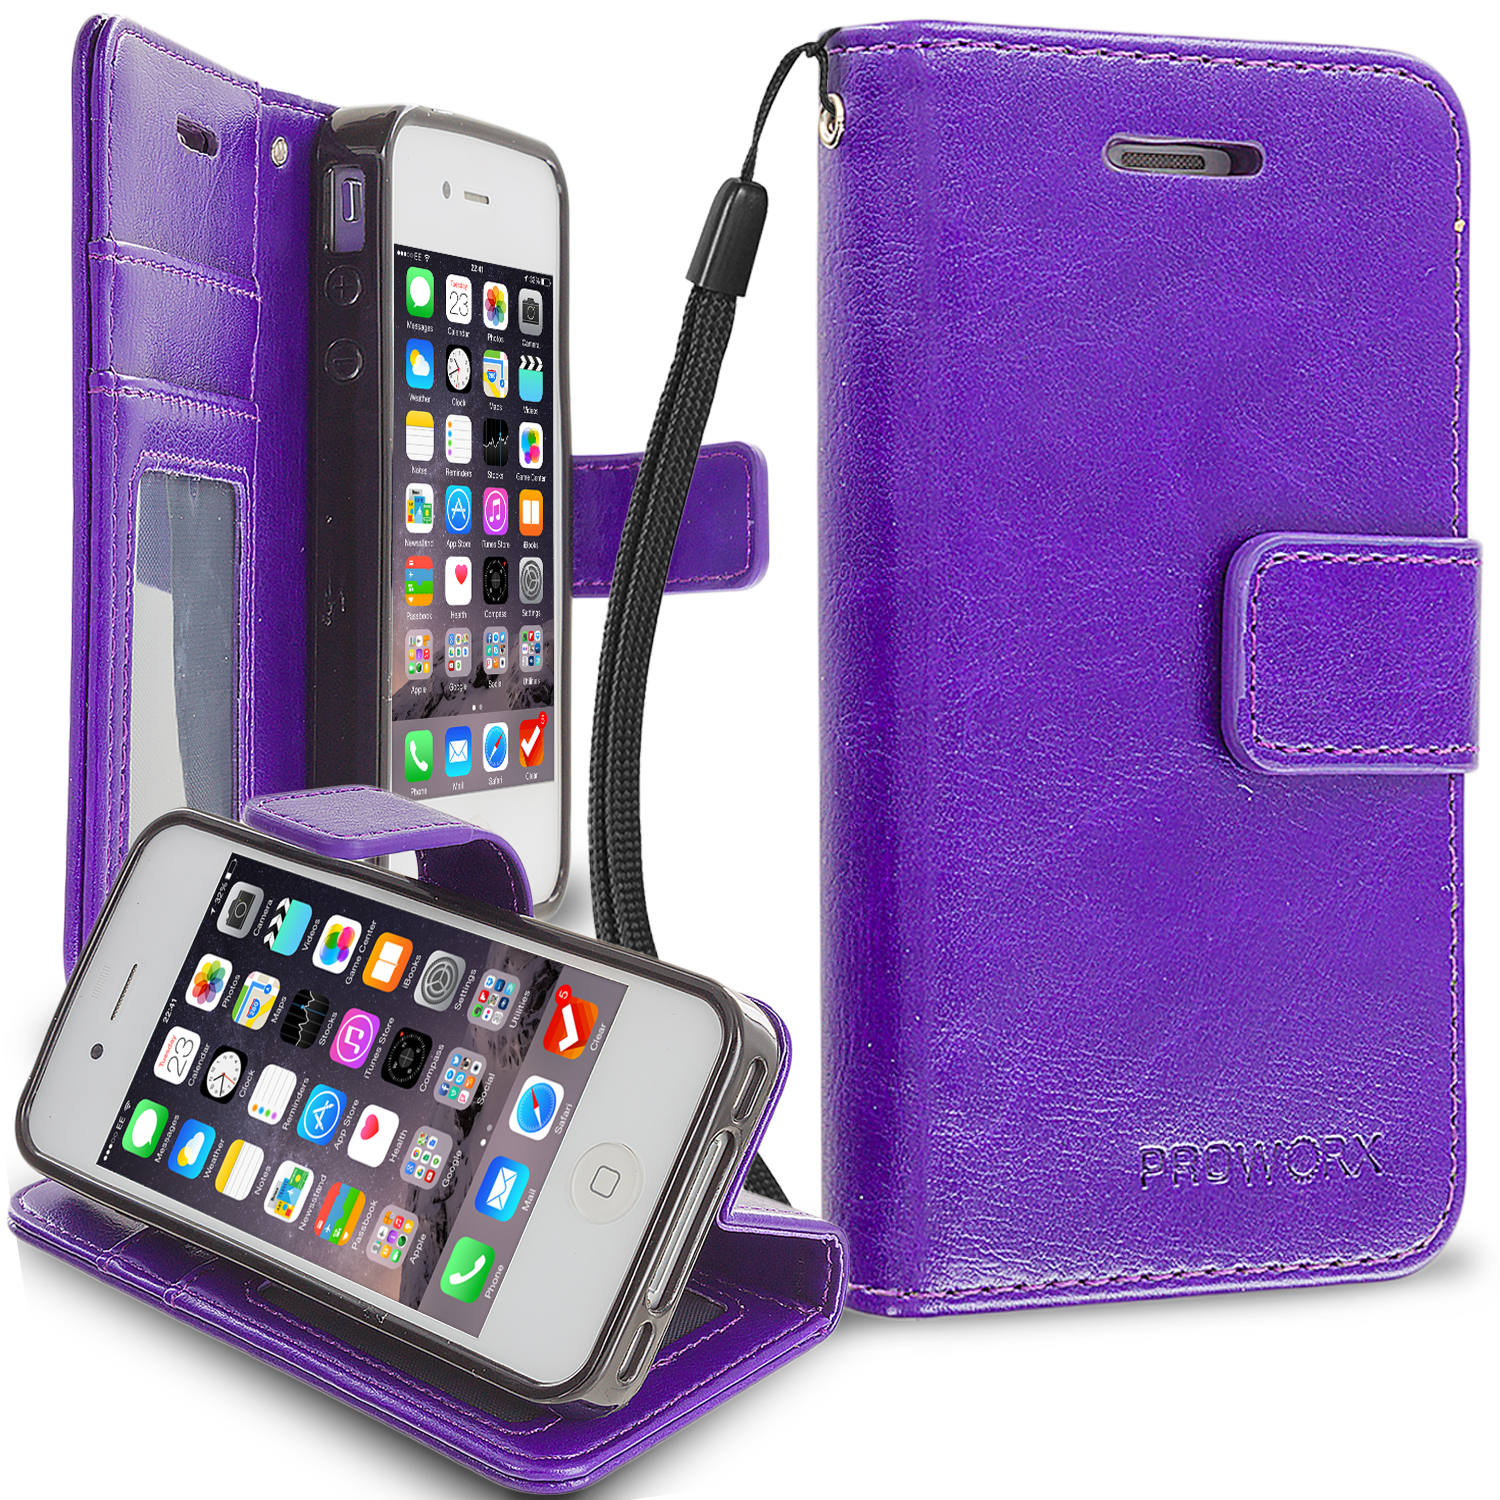 Apple iPhone 4 / 4S Purple ProWorx Wallet Case Luxury PU Leather Case Cover With Card Slots & Stand